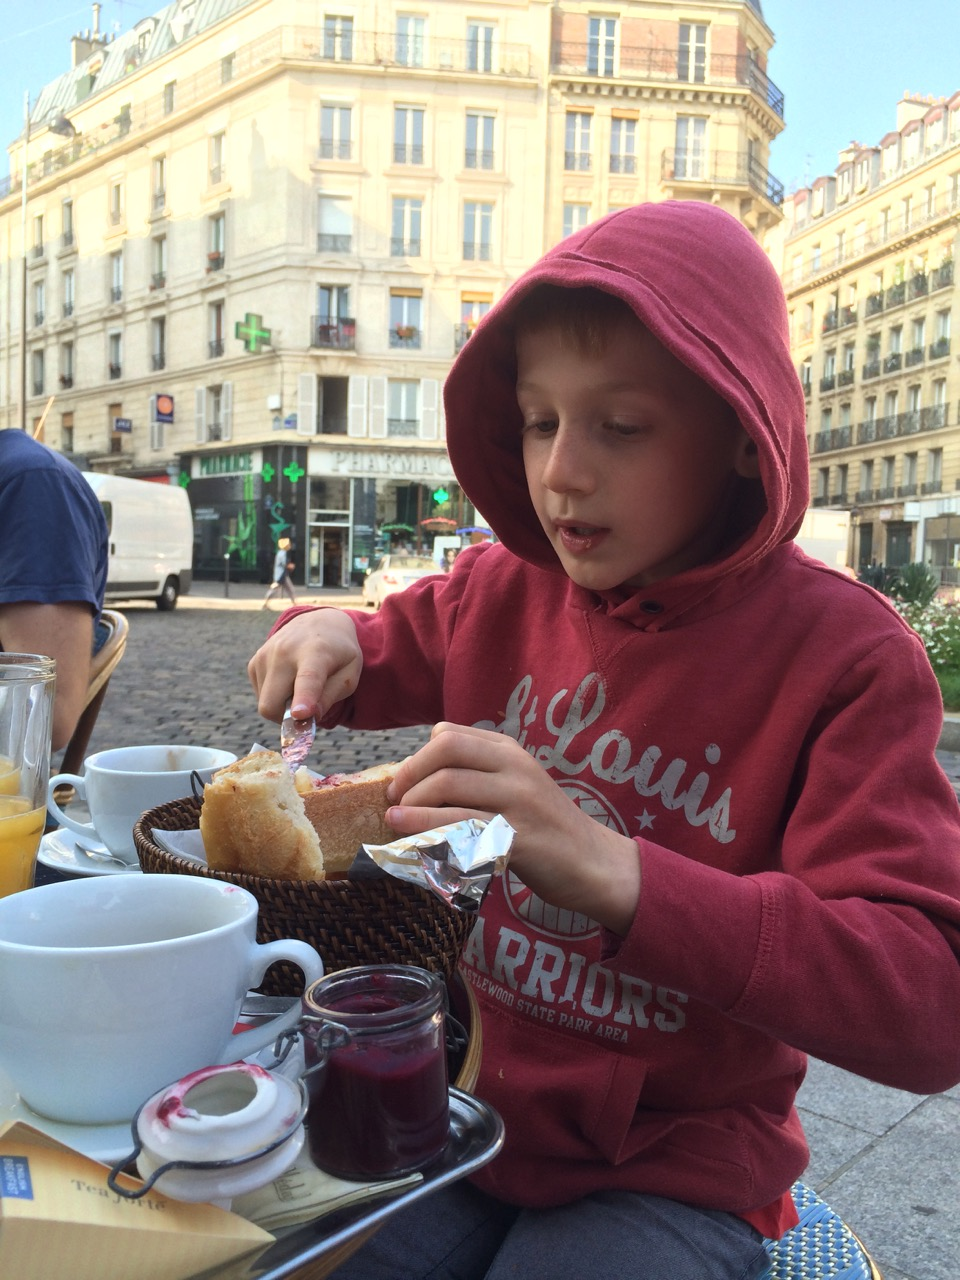 Oliver eating petite dejeuner in Paris